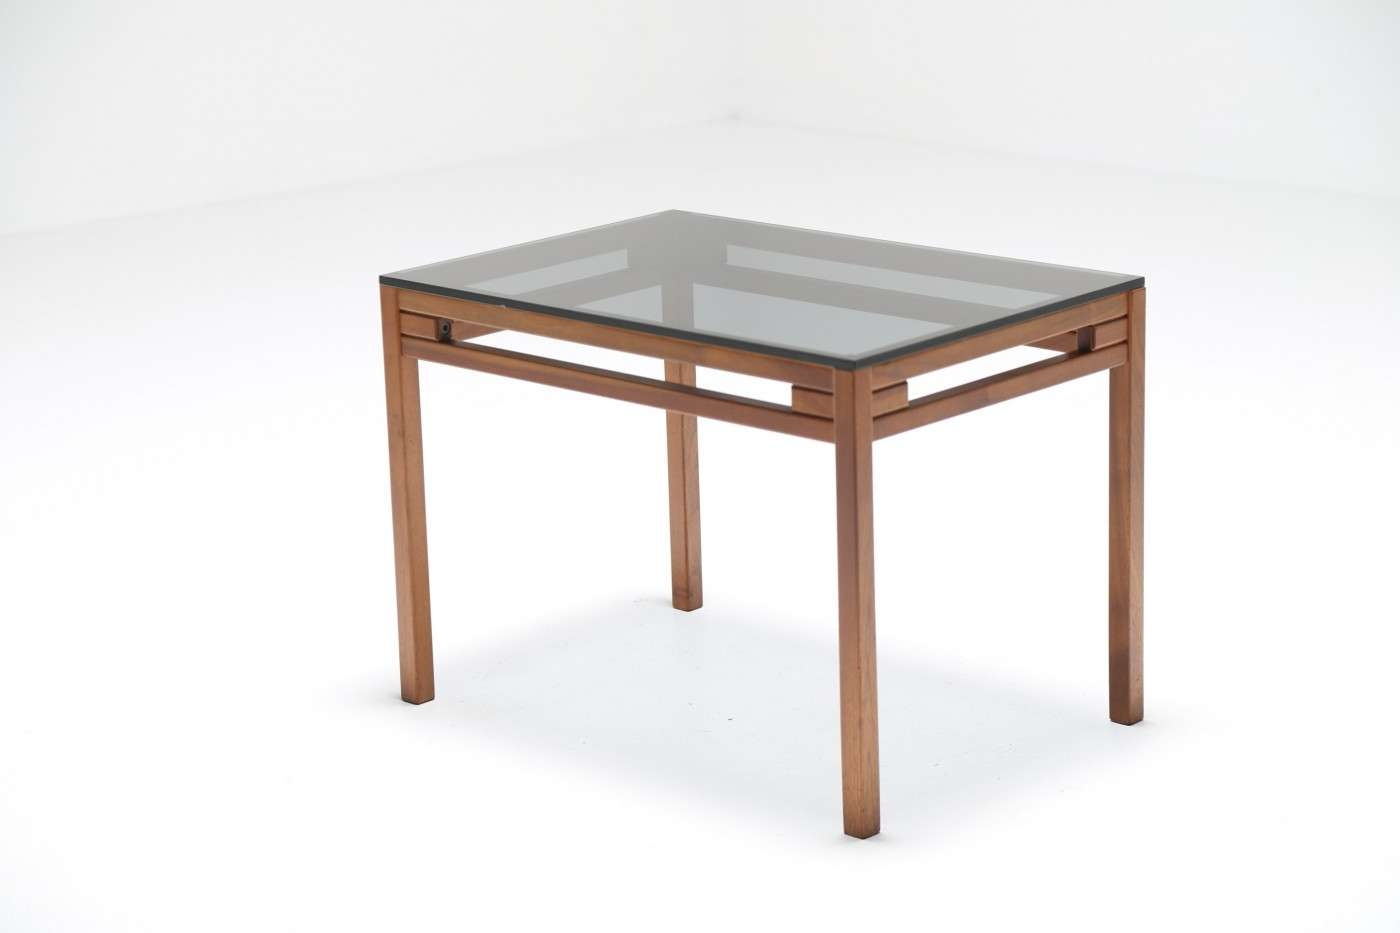 The Vintage Hub Regarding Most Recent Retro Teak Glass Coffee Tables (View 15 of 20)